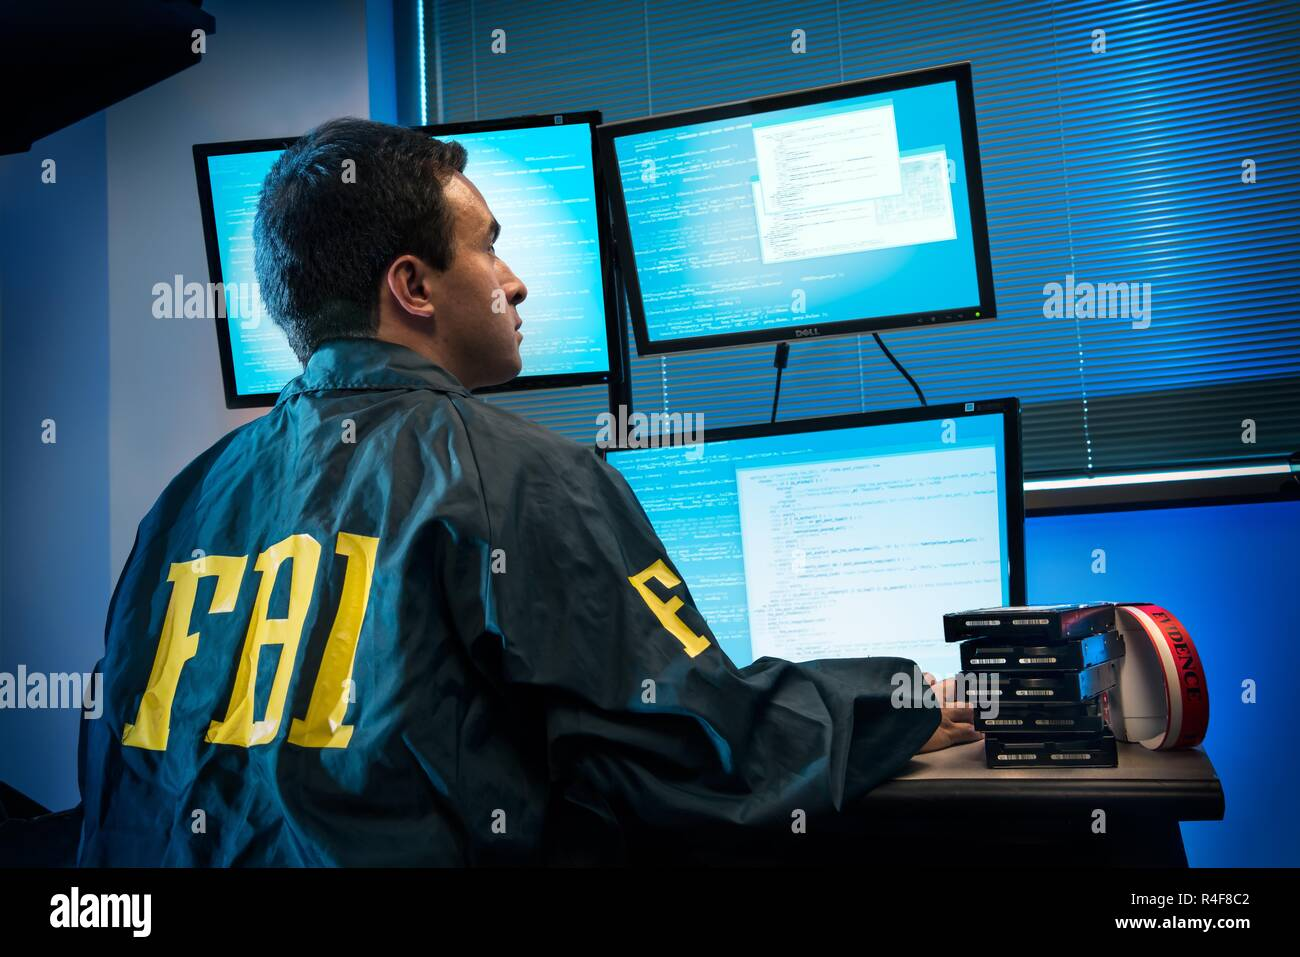 Federal Bureau of Investigation - FBI -agents work at computer in the bureau's cyber crimes division. The FBI Cyber Division is a Federal Bureau of Investigation division which heads the national effort to investigate and prosecute internet crimes, including 'cyber based terrorism, espionage, computer intrusions, and major cyber fraud.' This division of the FBI uses the information it gathers during investigation to inform the public of current trends in cyber crime.Federal Bureau of Investigation It focuses around three main priorities: computer intrusion, identity theft, and cyber fraud. - Stock Image